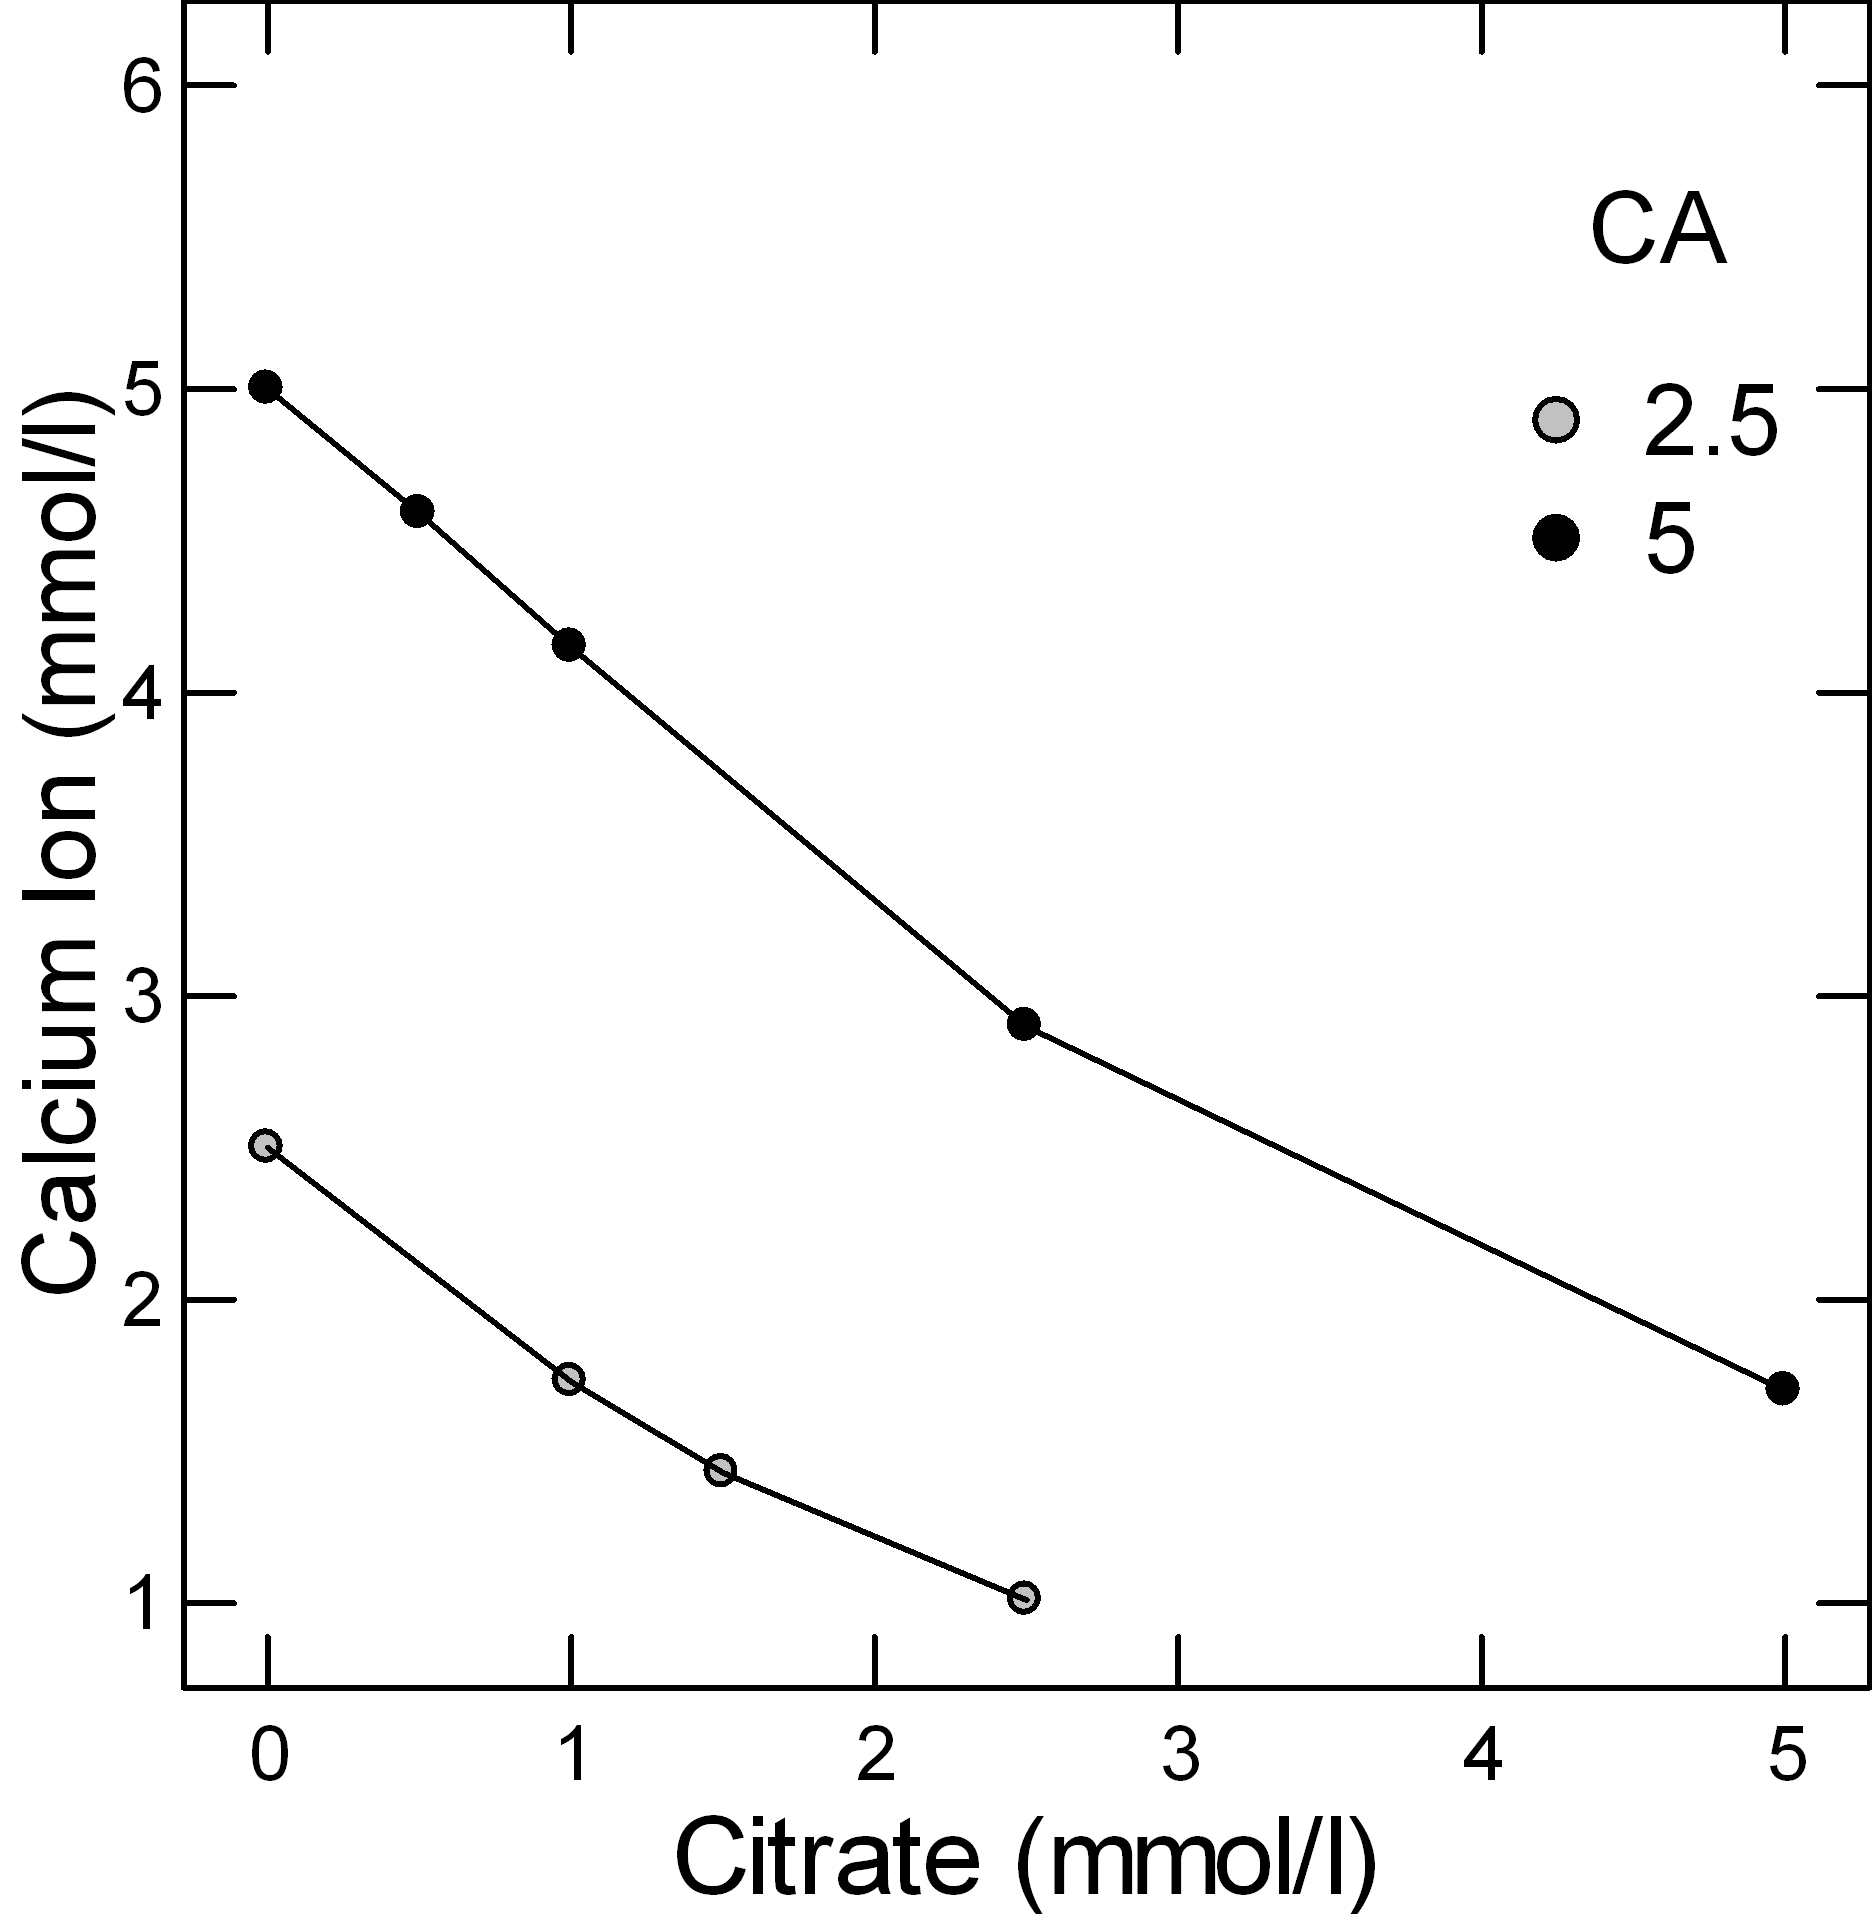 CALCIUM ION VS CITRATE MOLARITY